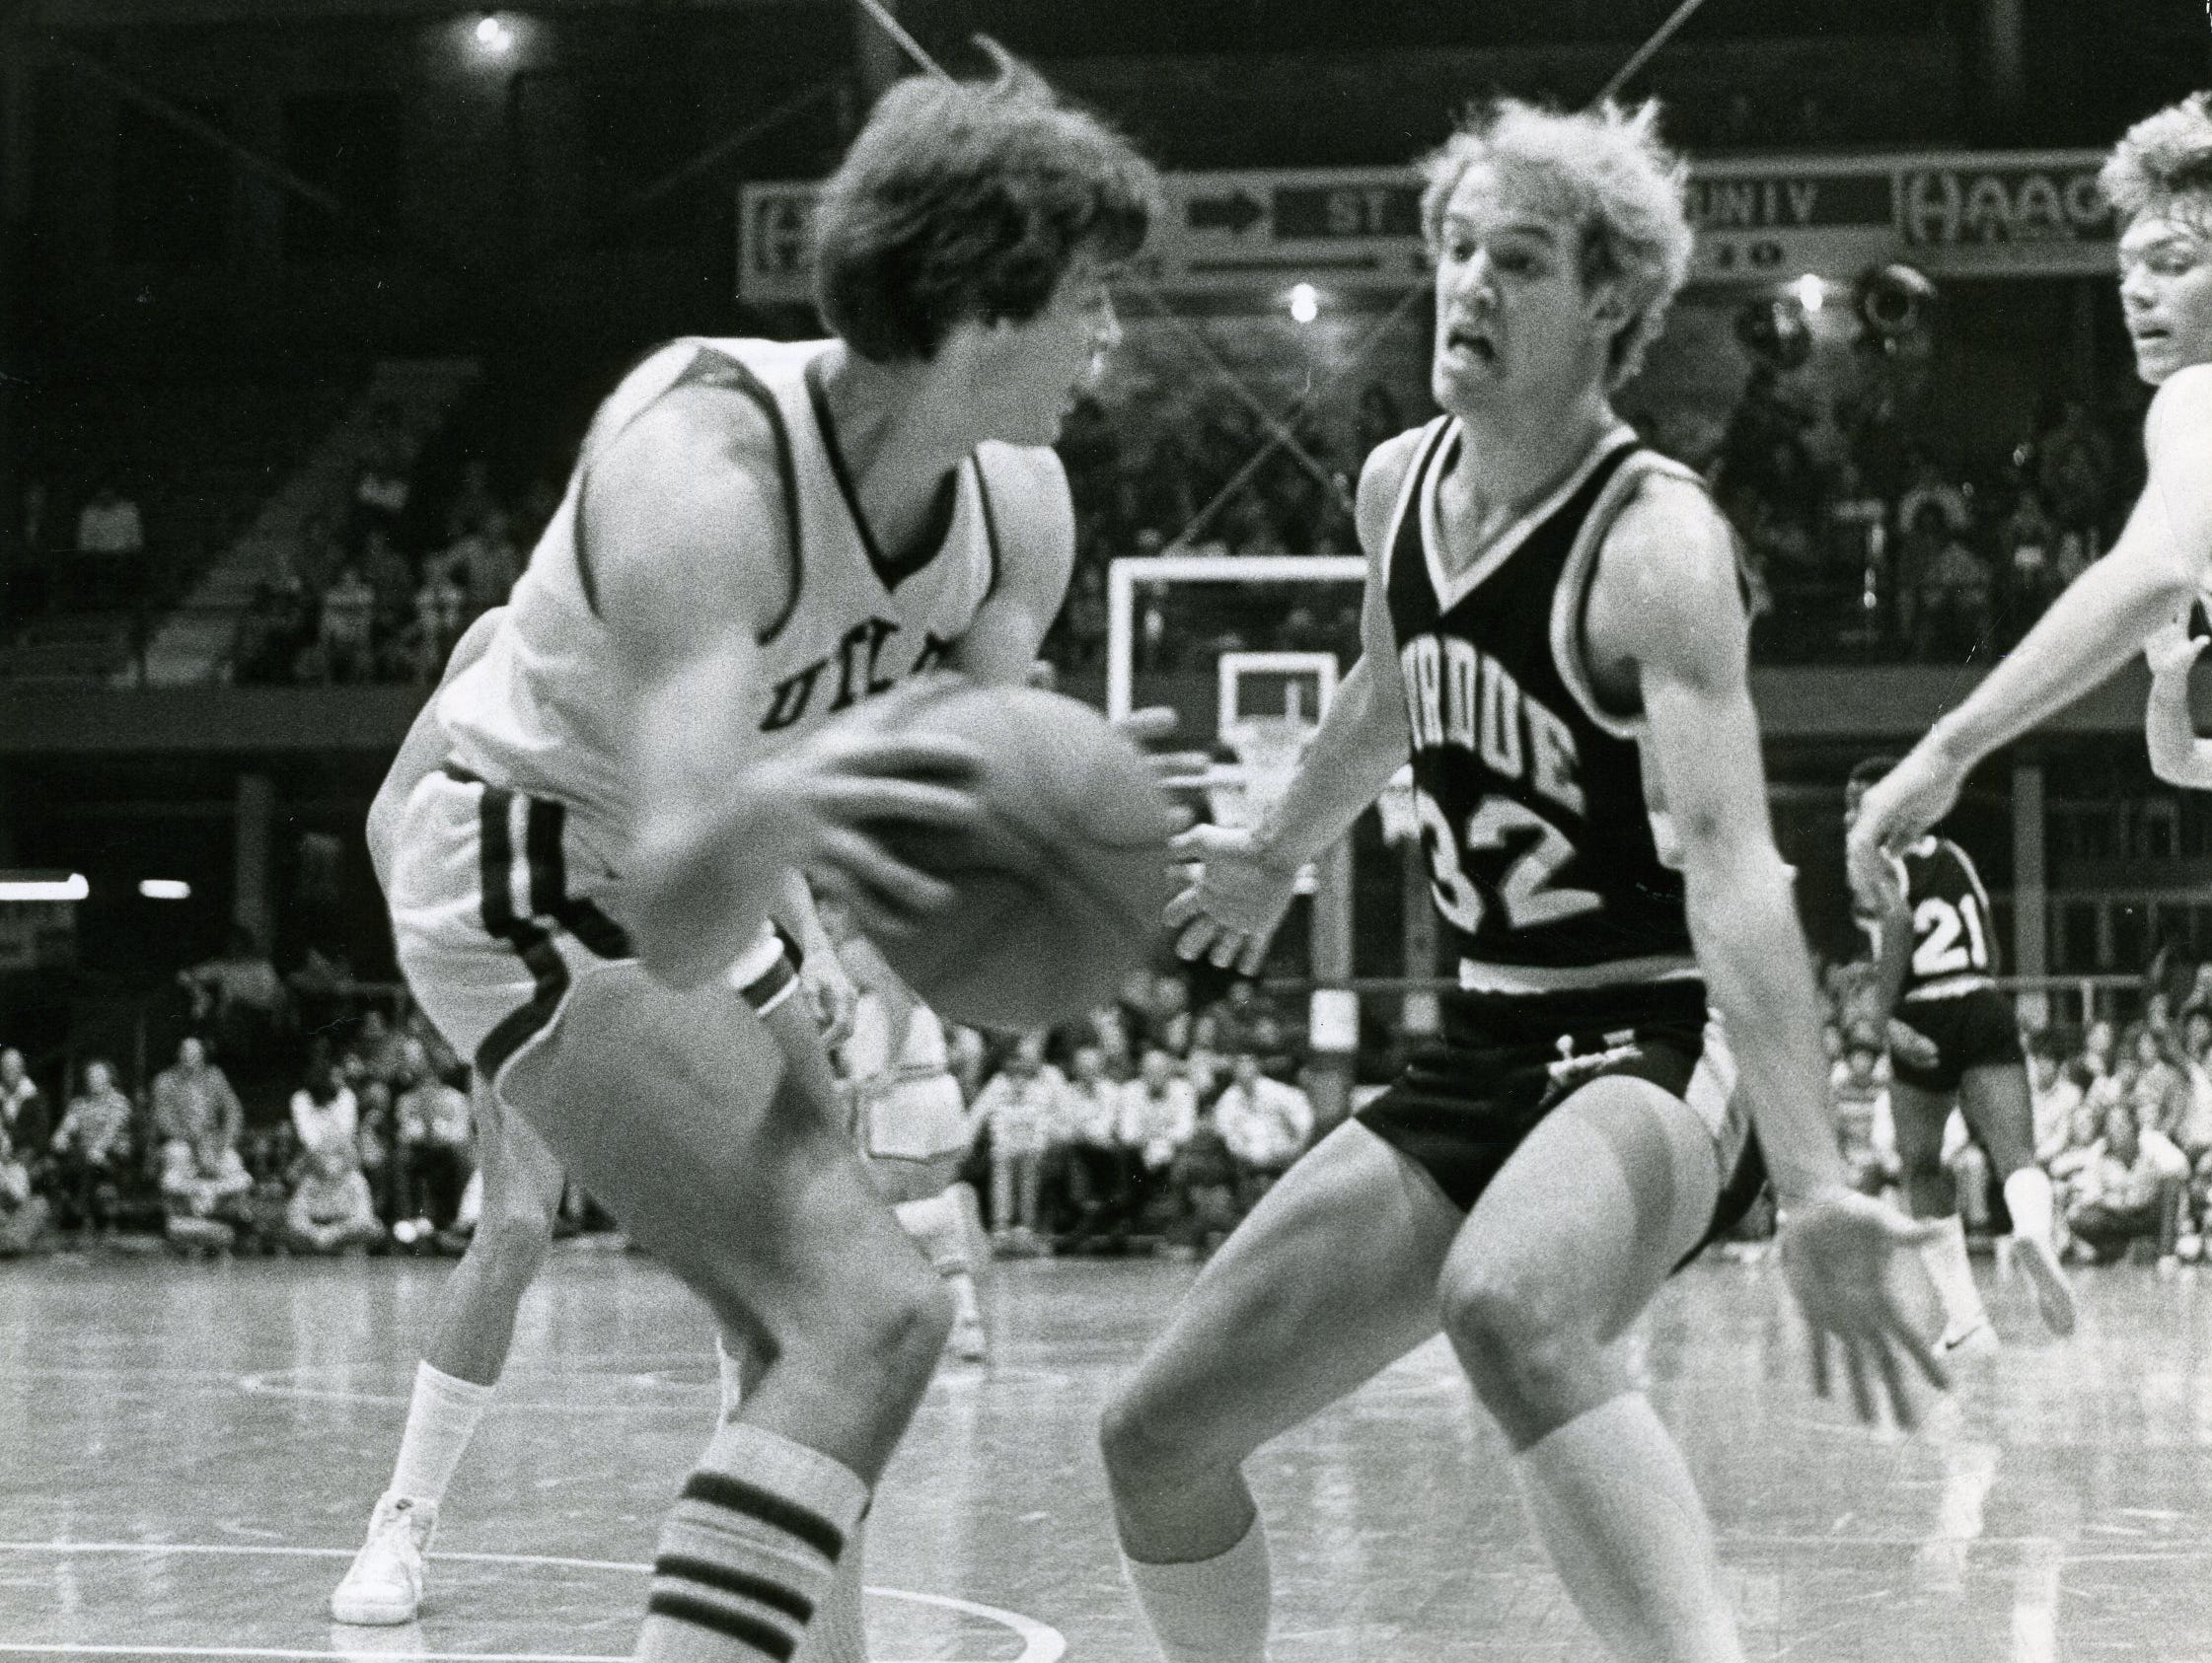 Kevin Stallings, right, played for Purdue's 1980 Final Four team. He later started for the Boilermakers and led the team in assists in 1981-82.